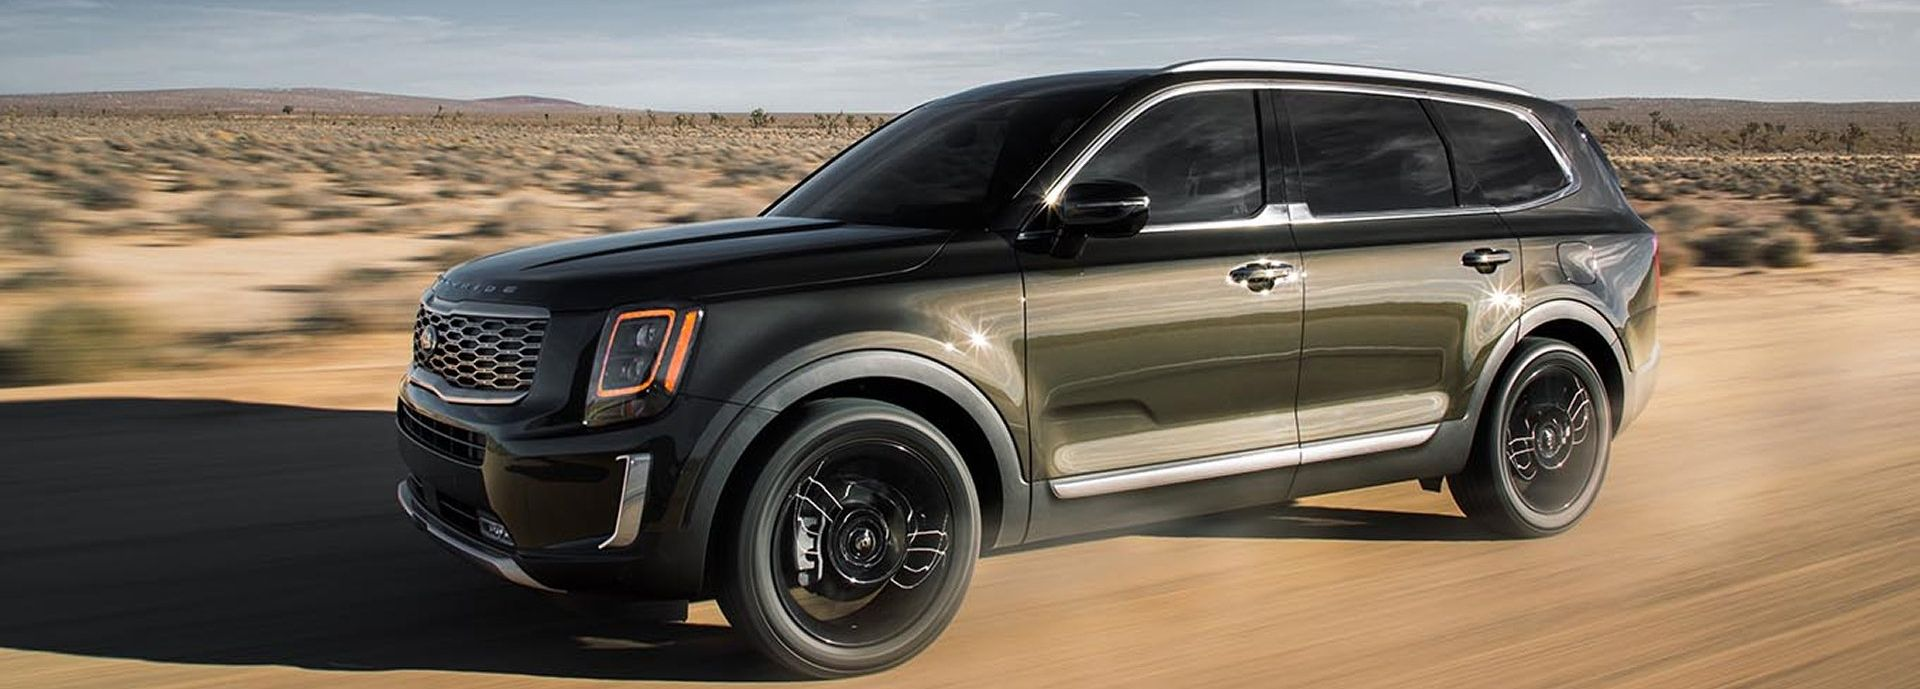 2020 Kia Telluride Coming Soon in Rockford, IL